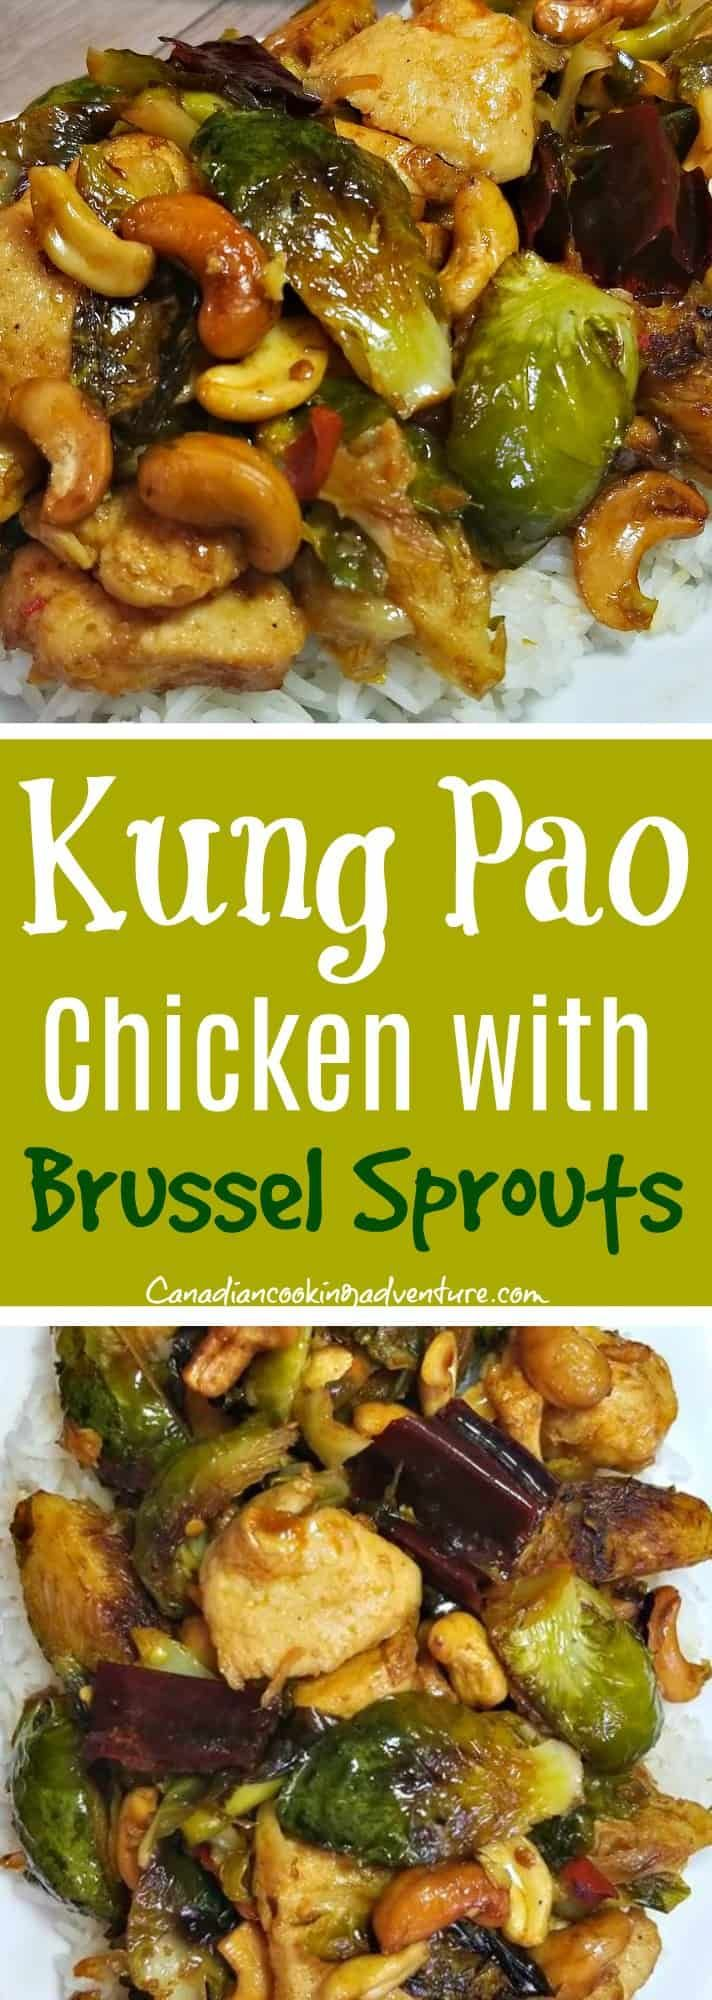 kung pao chicken with brussel sprouts  chicken brussel